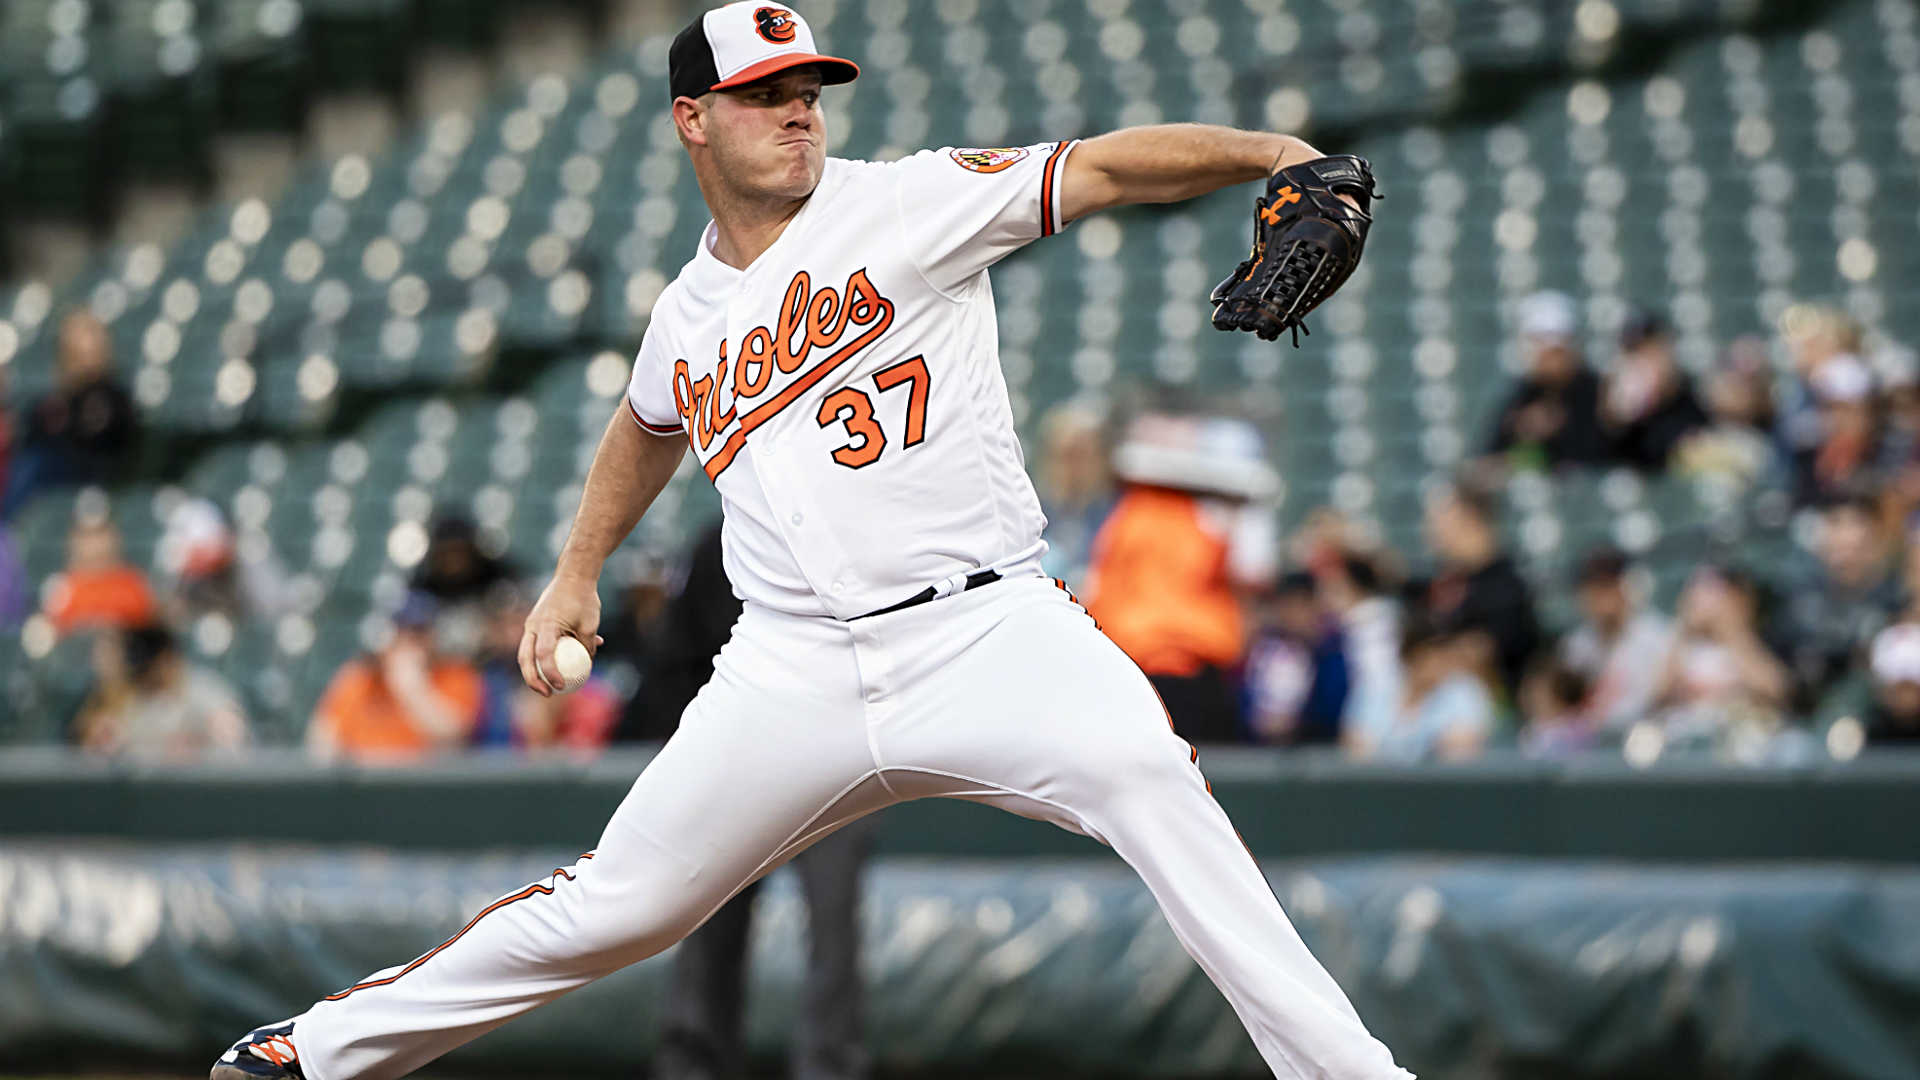 Orioles (8-26) vs. Royals (11-23)